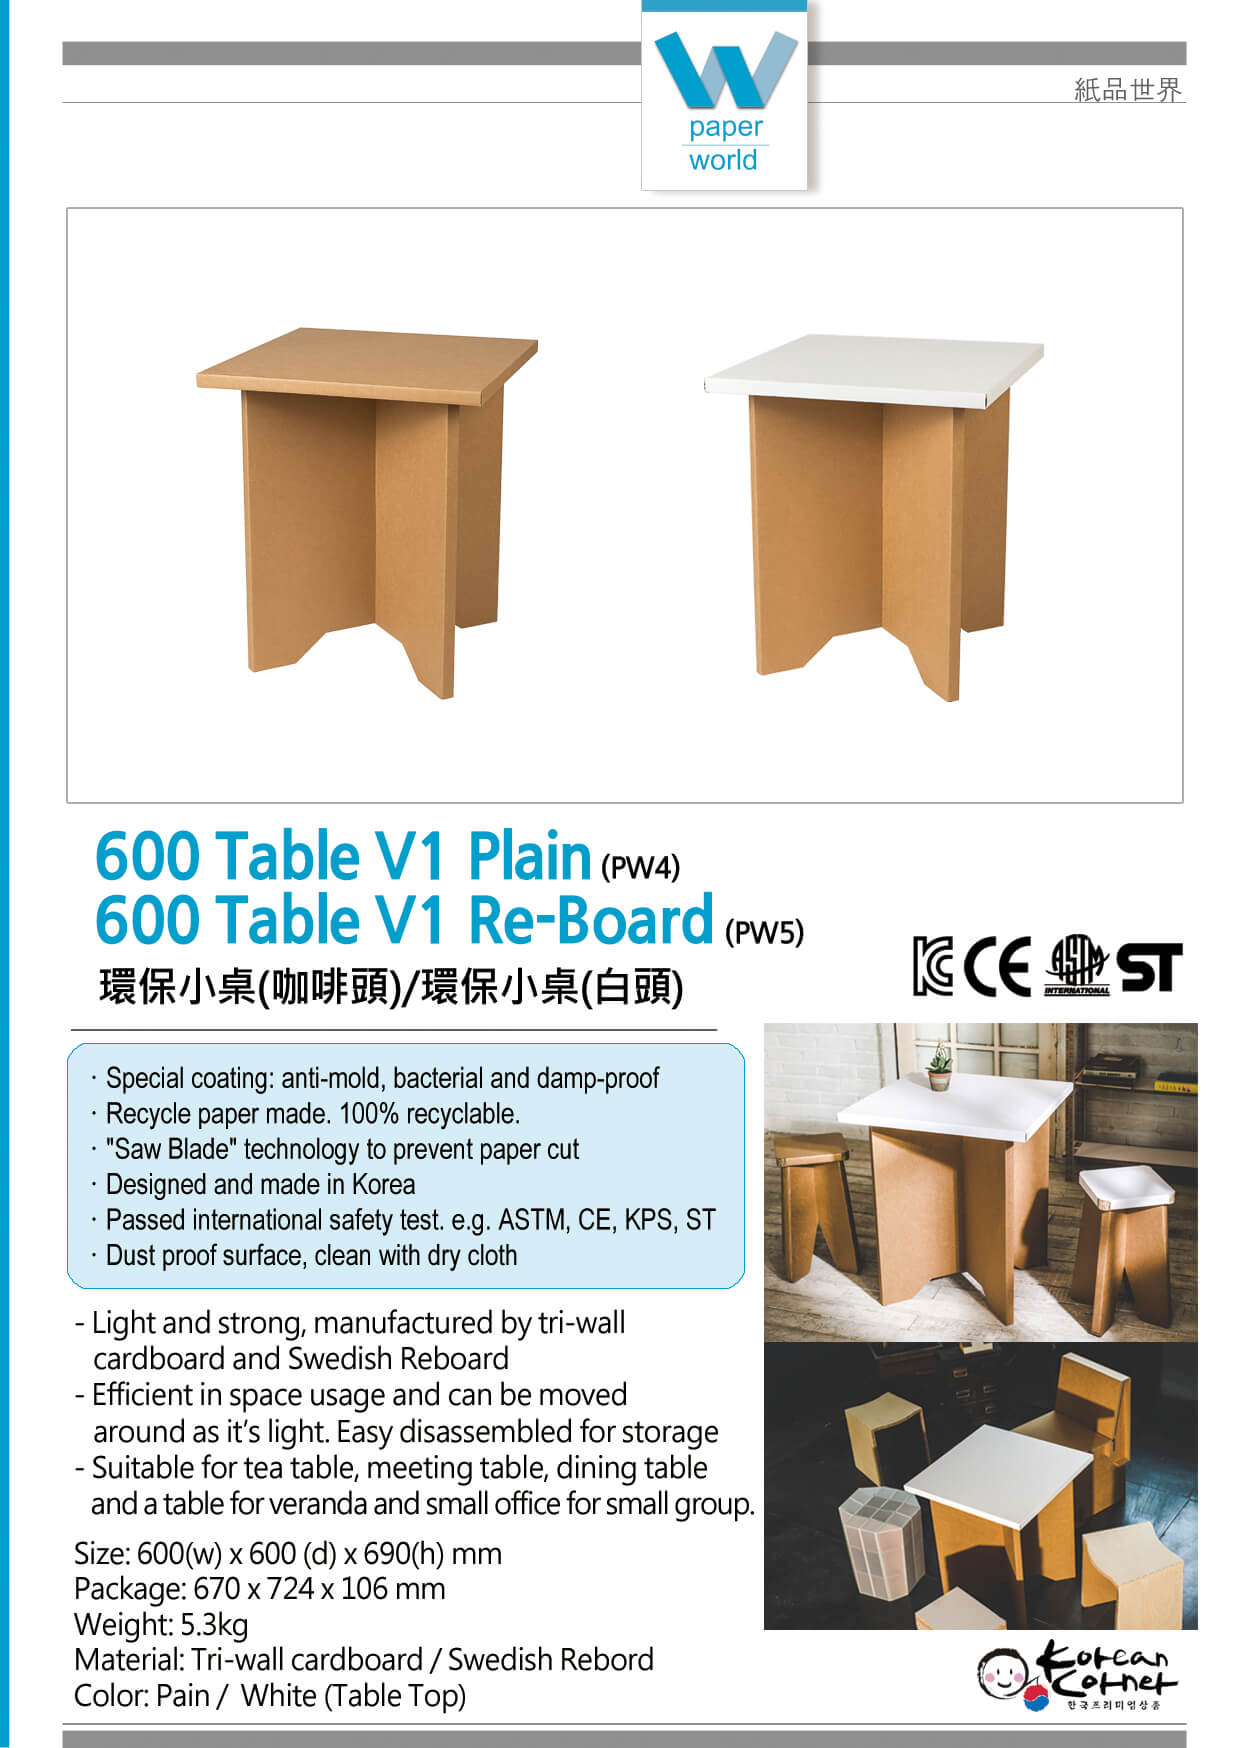 600 Table V1 Plain